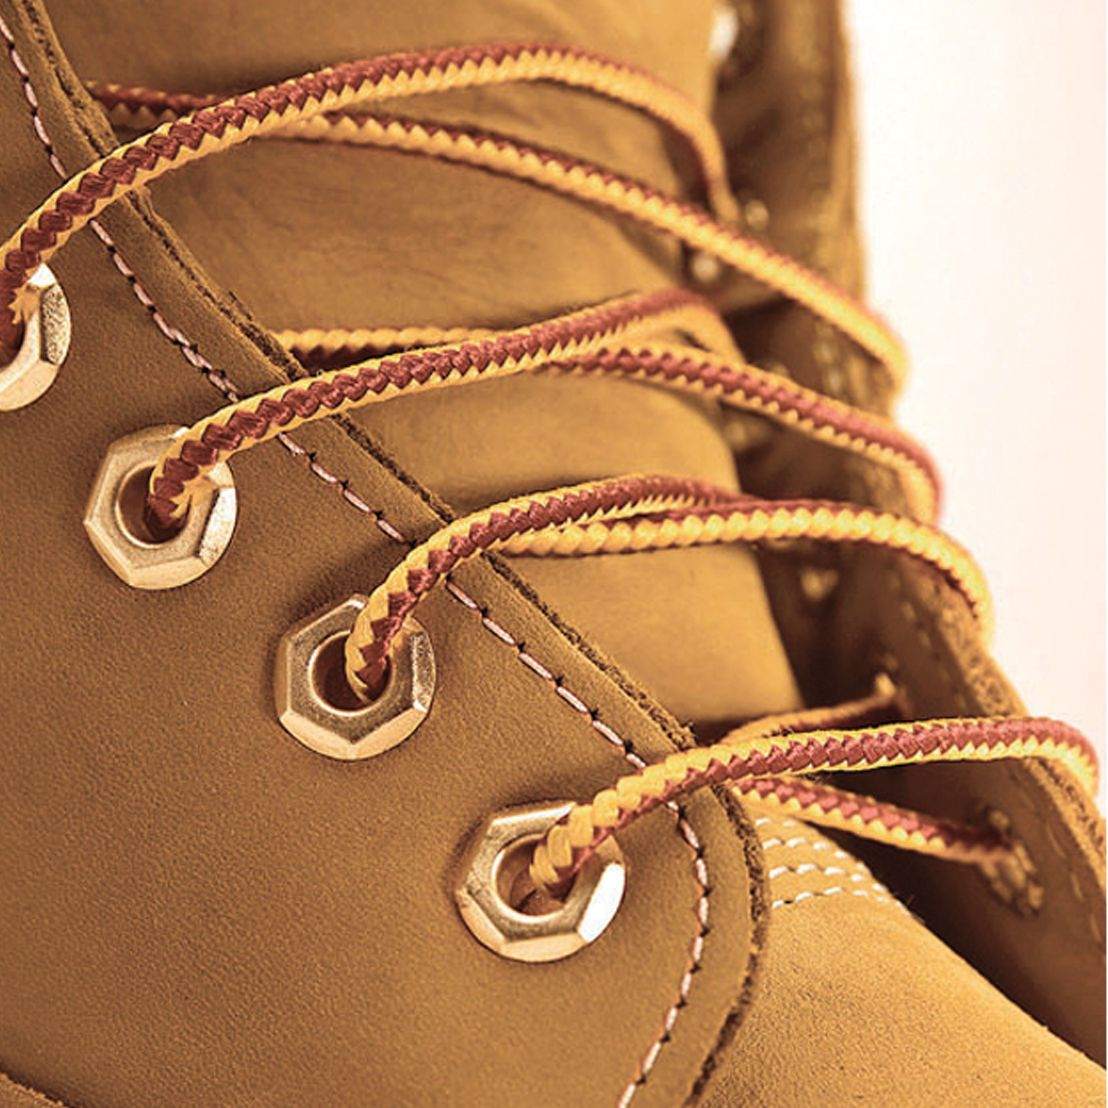 Yellow Boot Laces Close-up